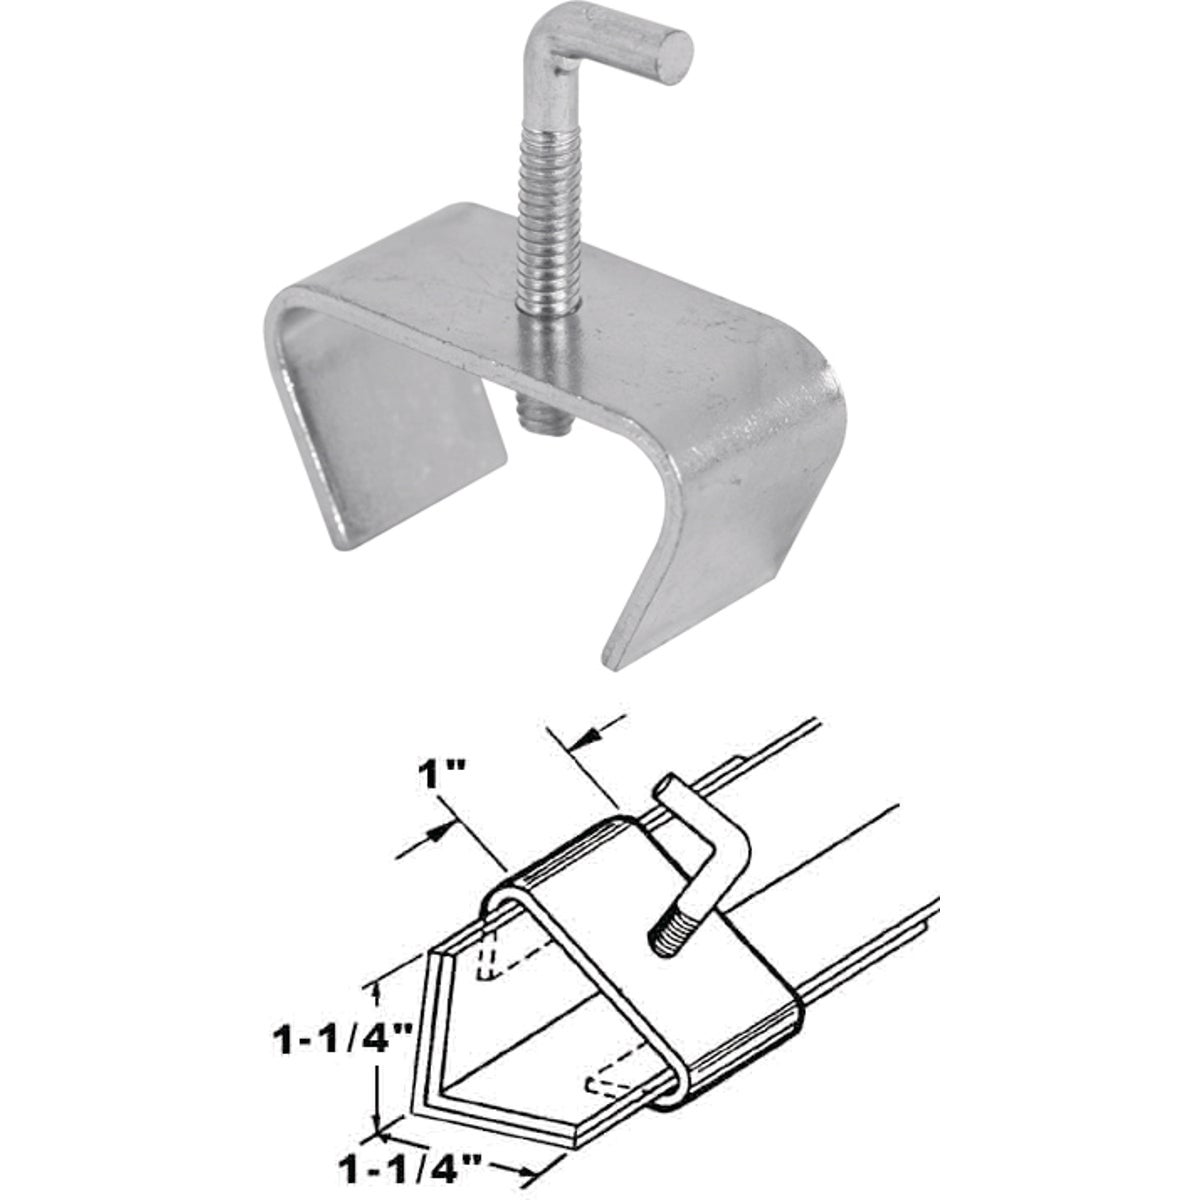 "1-1/4"" BEDFRM RAIL CLAMP - 241948 by Prime Line Products"